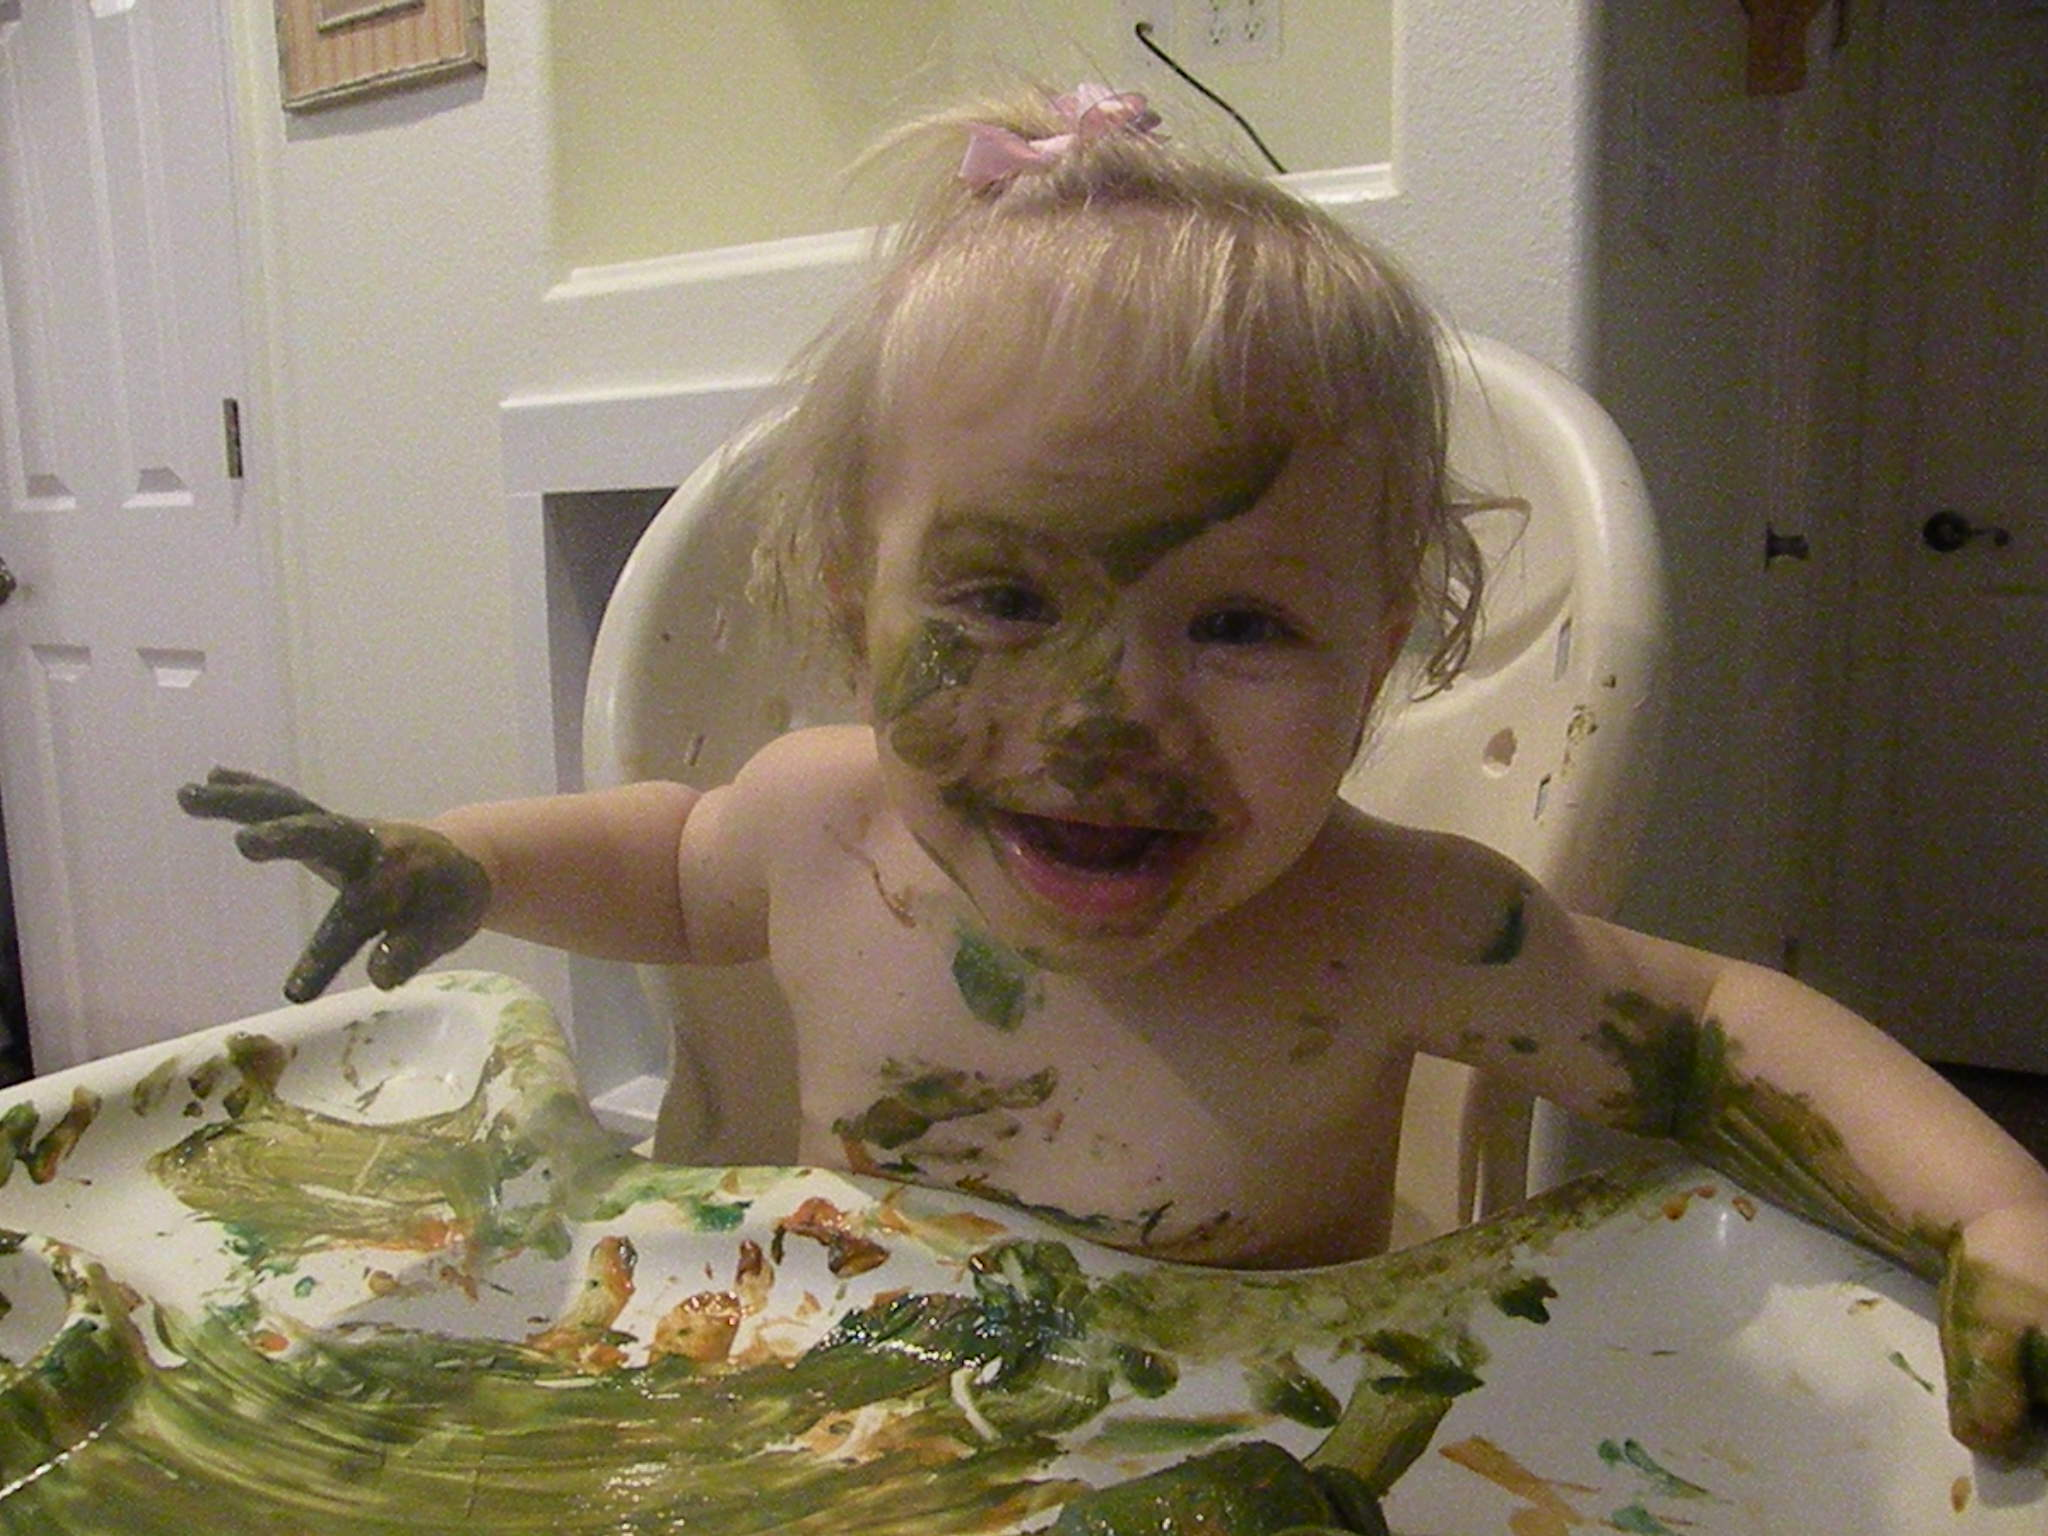 Toddler in a high chair smeared with green goop